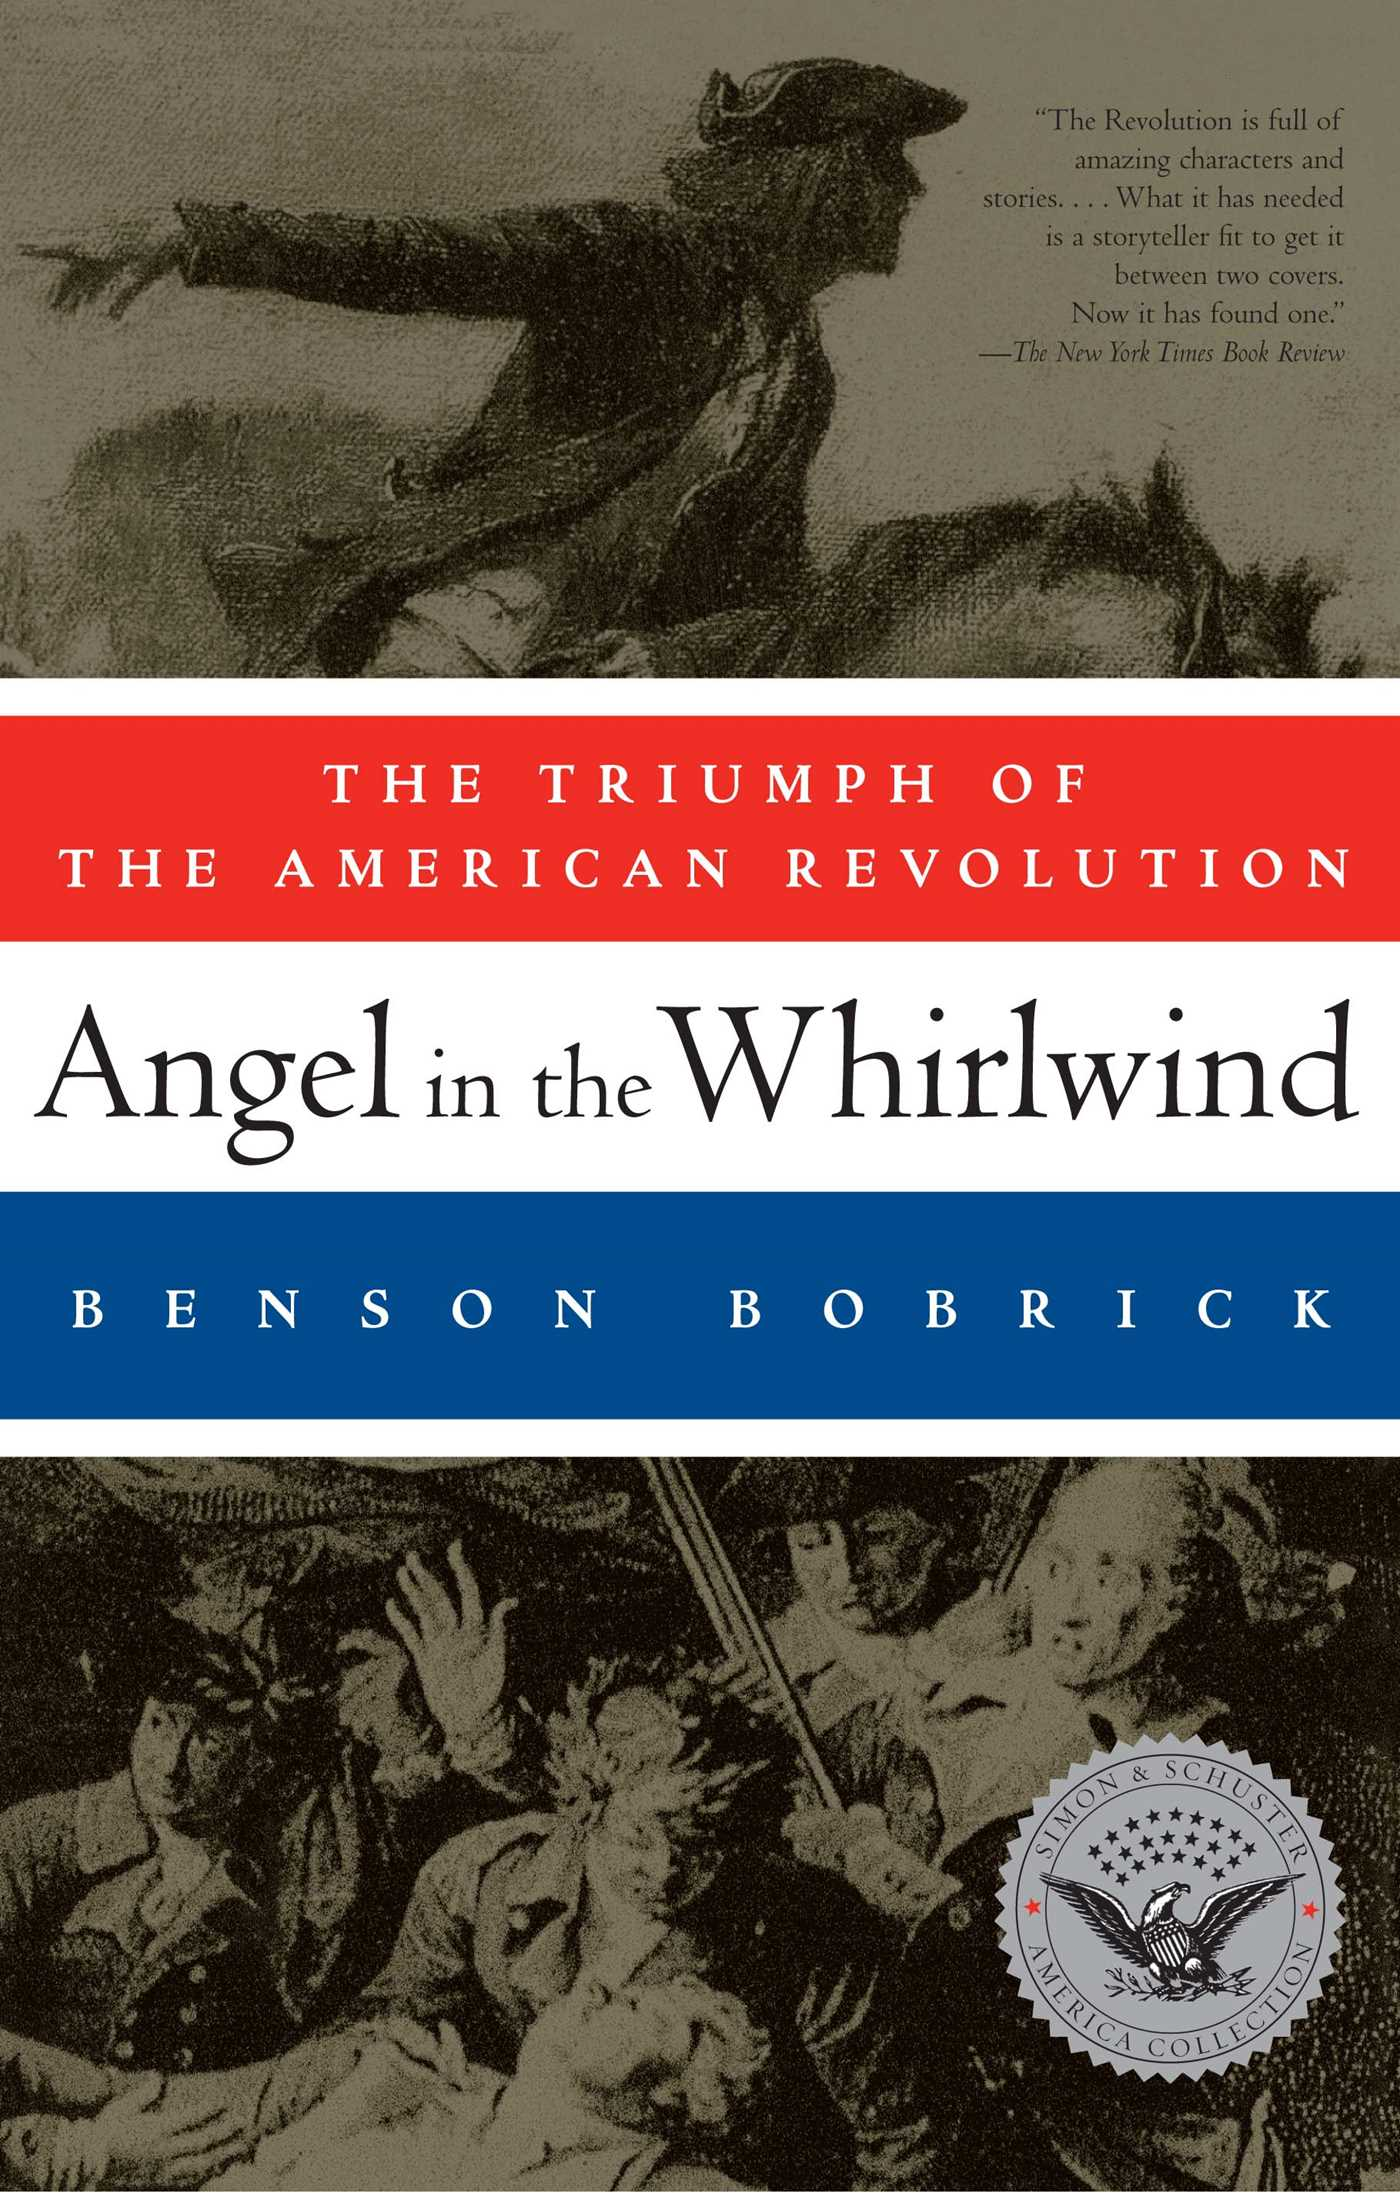 Angel in the whirlwind 9781451626995 hr